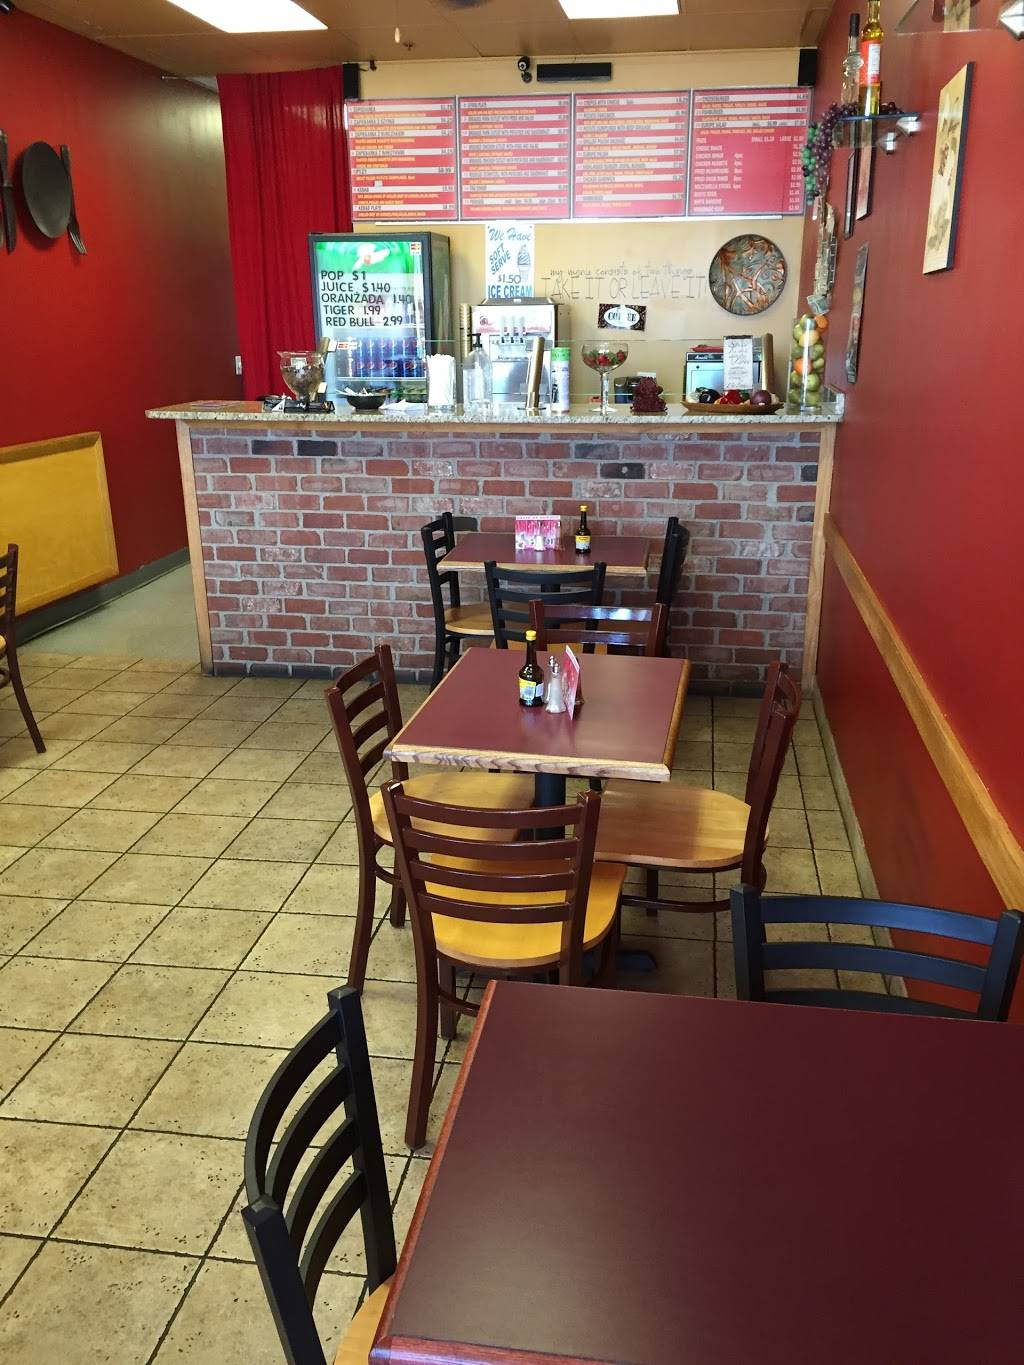 Taste Of Europe | restaurant | 8613 95th St, Hickory Hills, IL 60457, USA | 7087756590 OR +1 708-775-6590